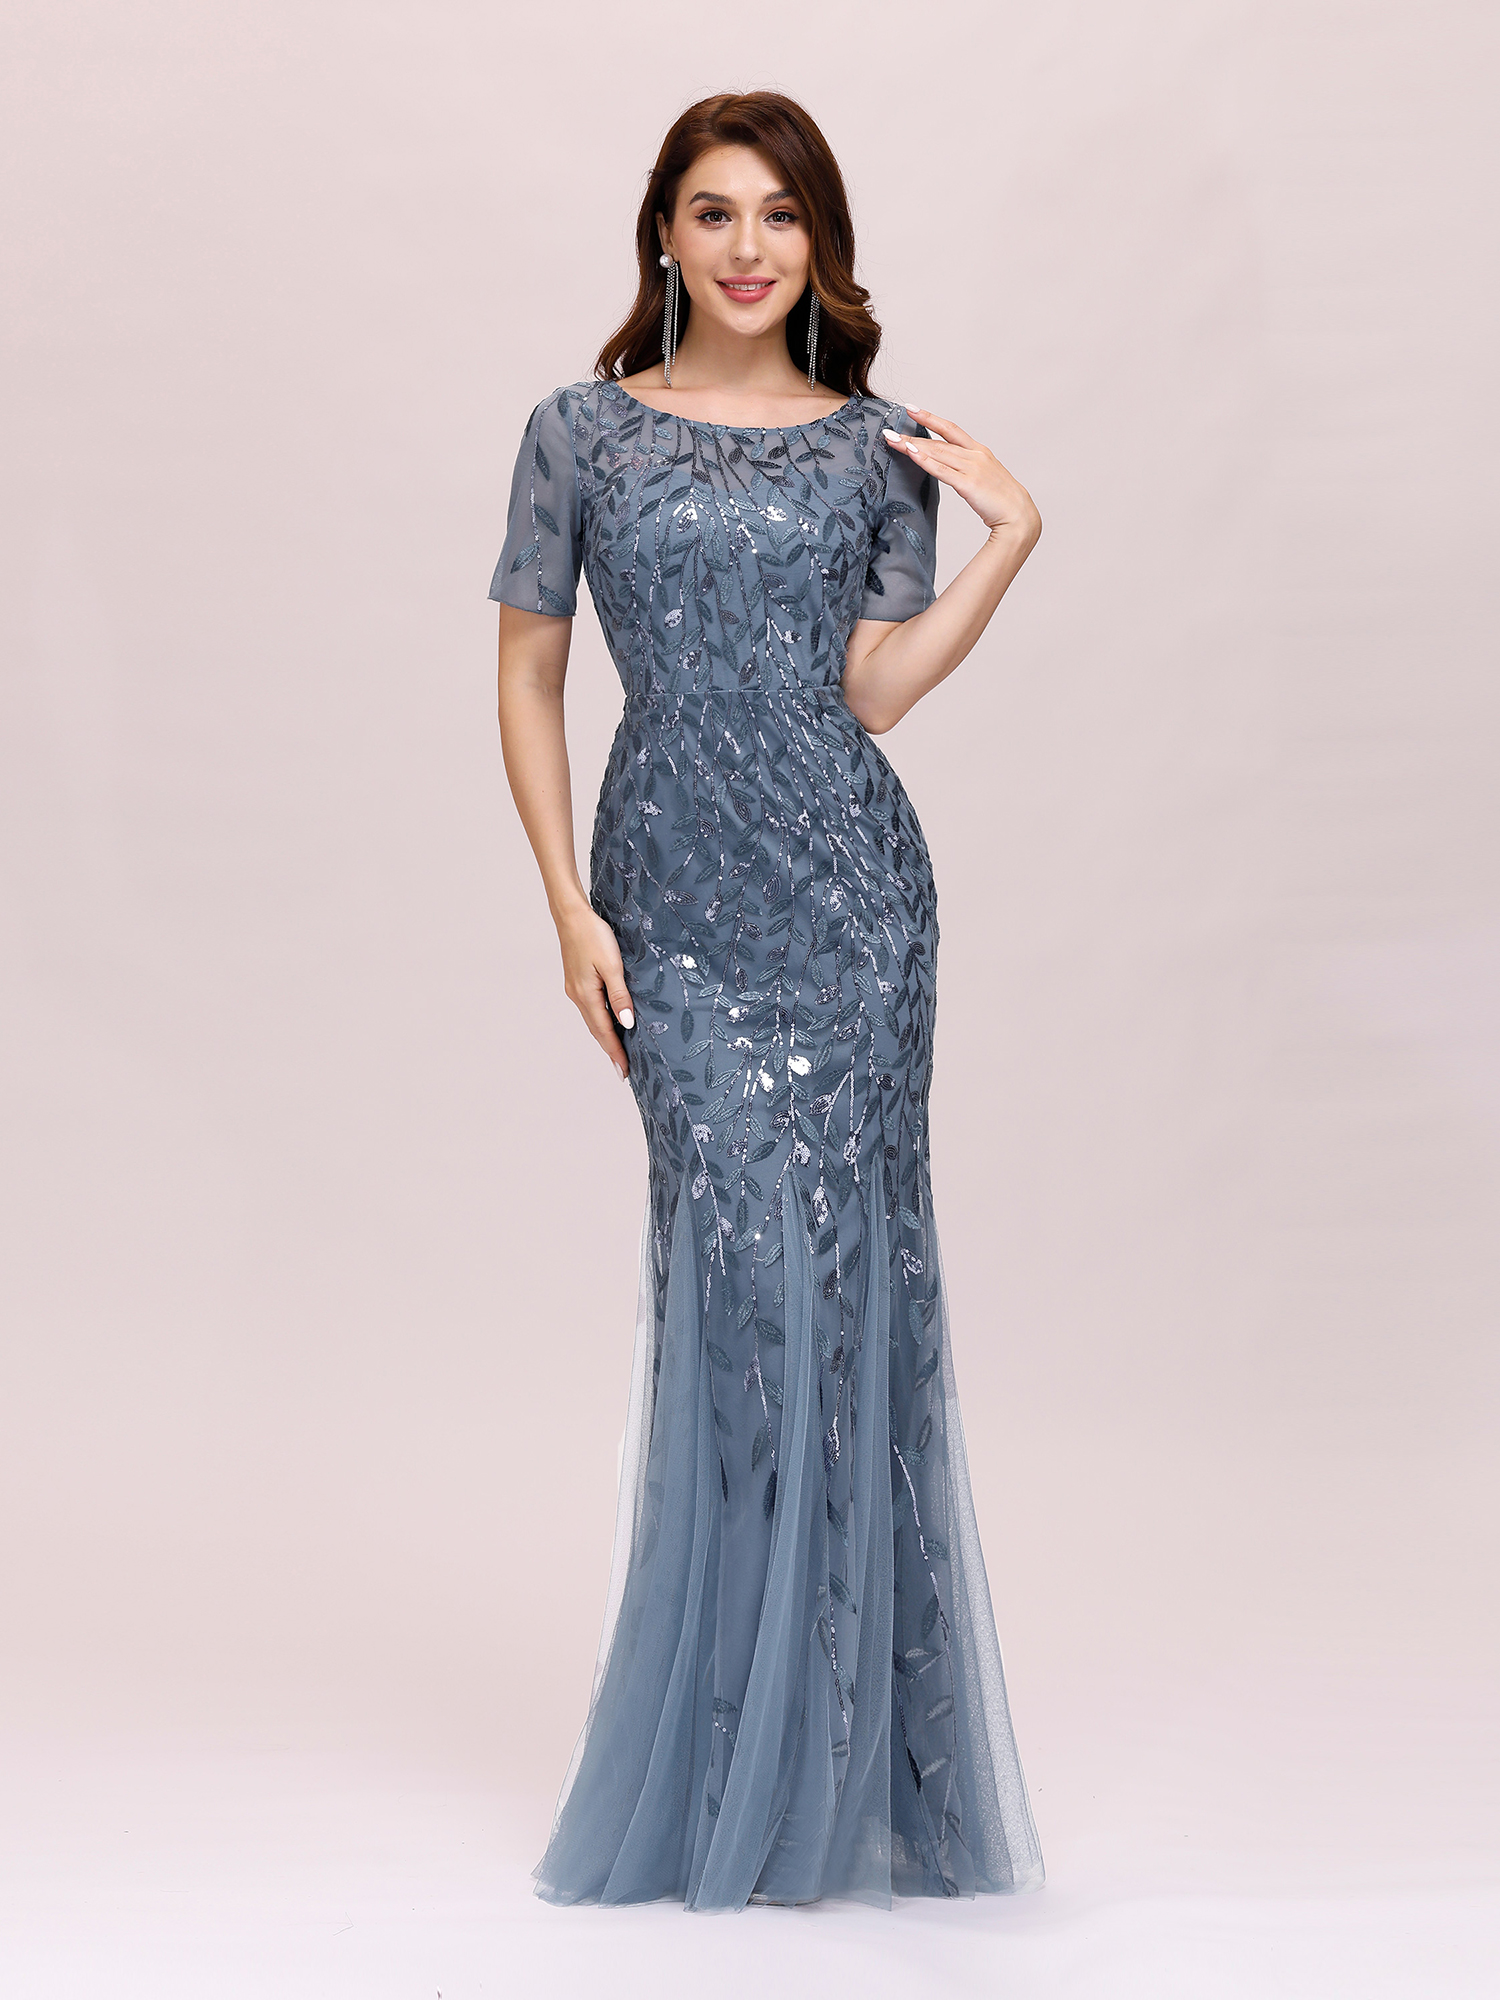 Ever-Pretty Homecoming Dresses Long Bodycon Sequins Applique Wedding Gowns 07707